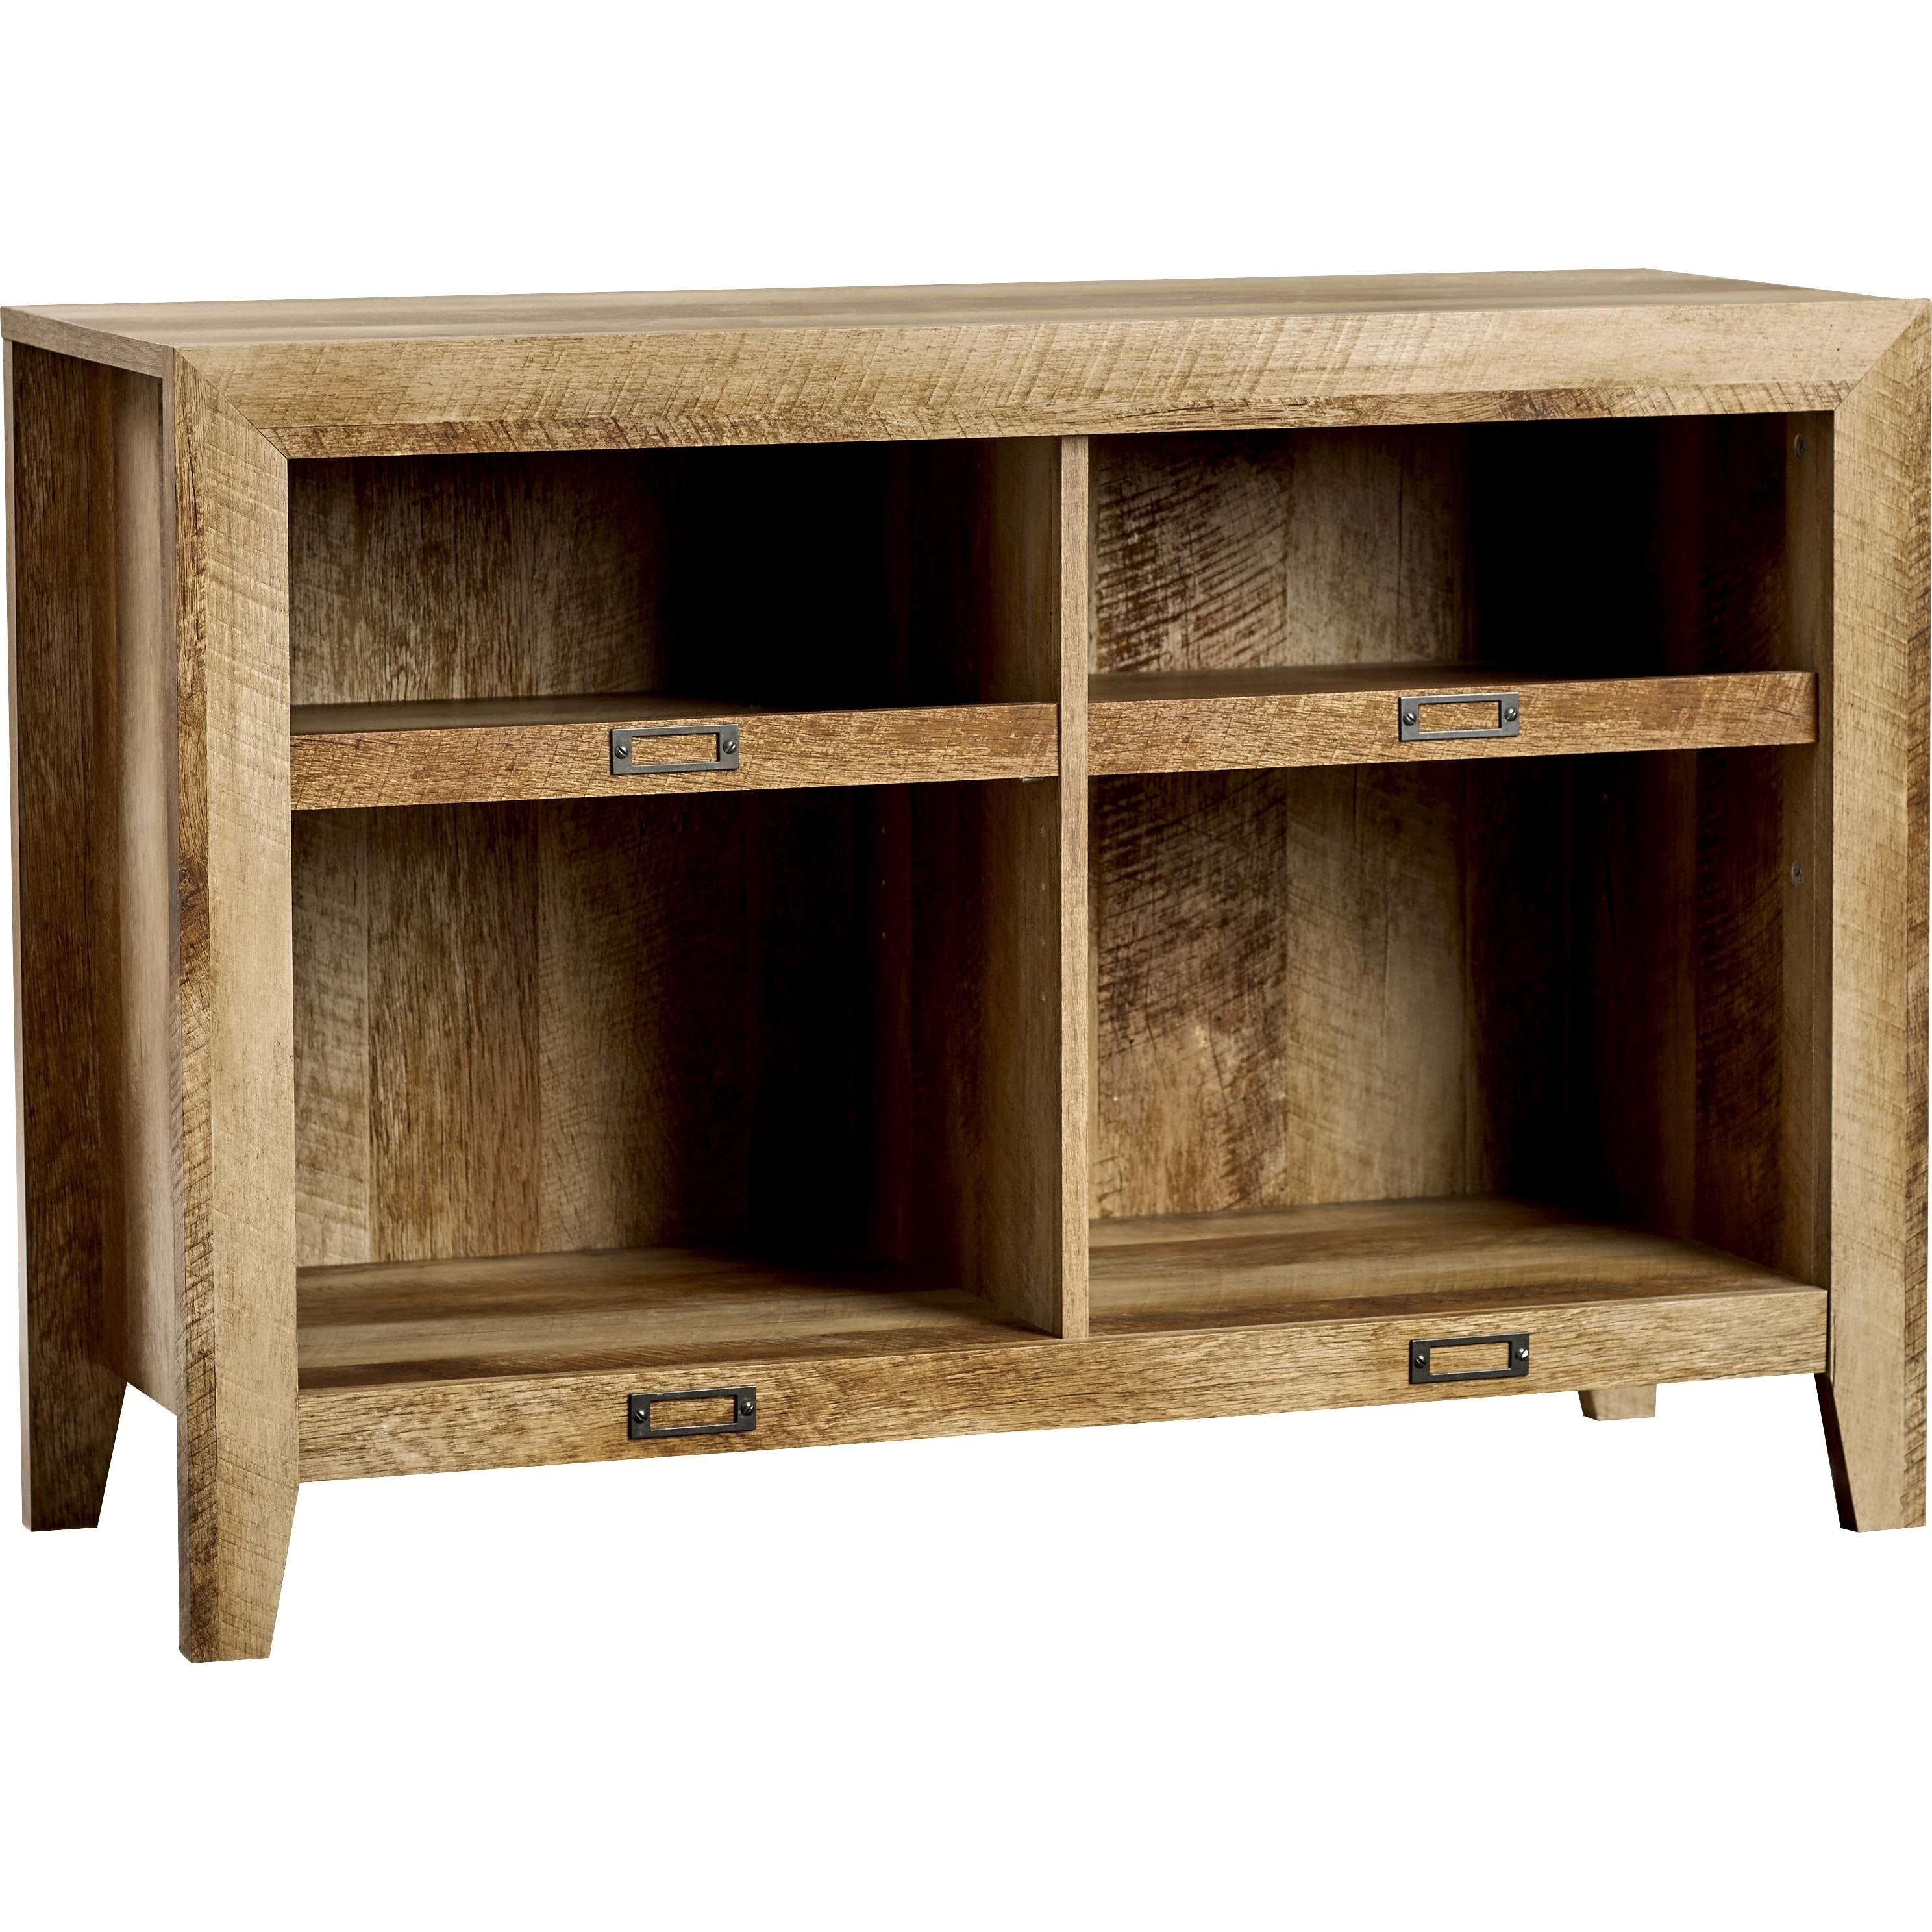 Surprising Joss And Main Tv Stands Within Joss And Main Tv Stands (View 8 of 15)